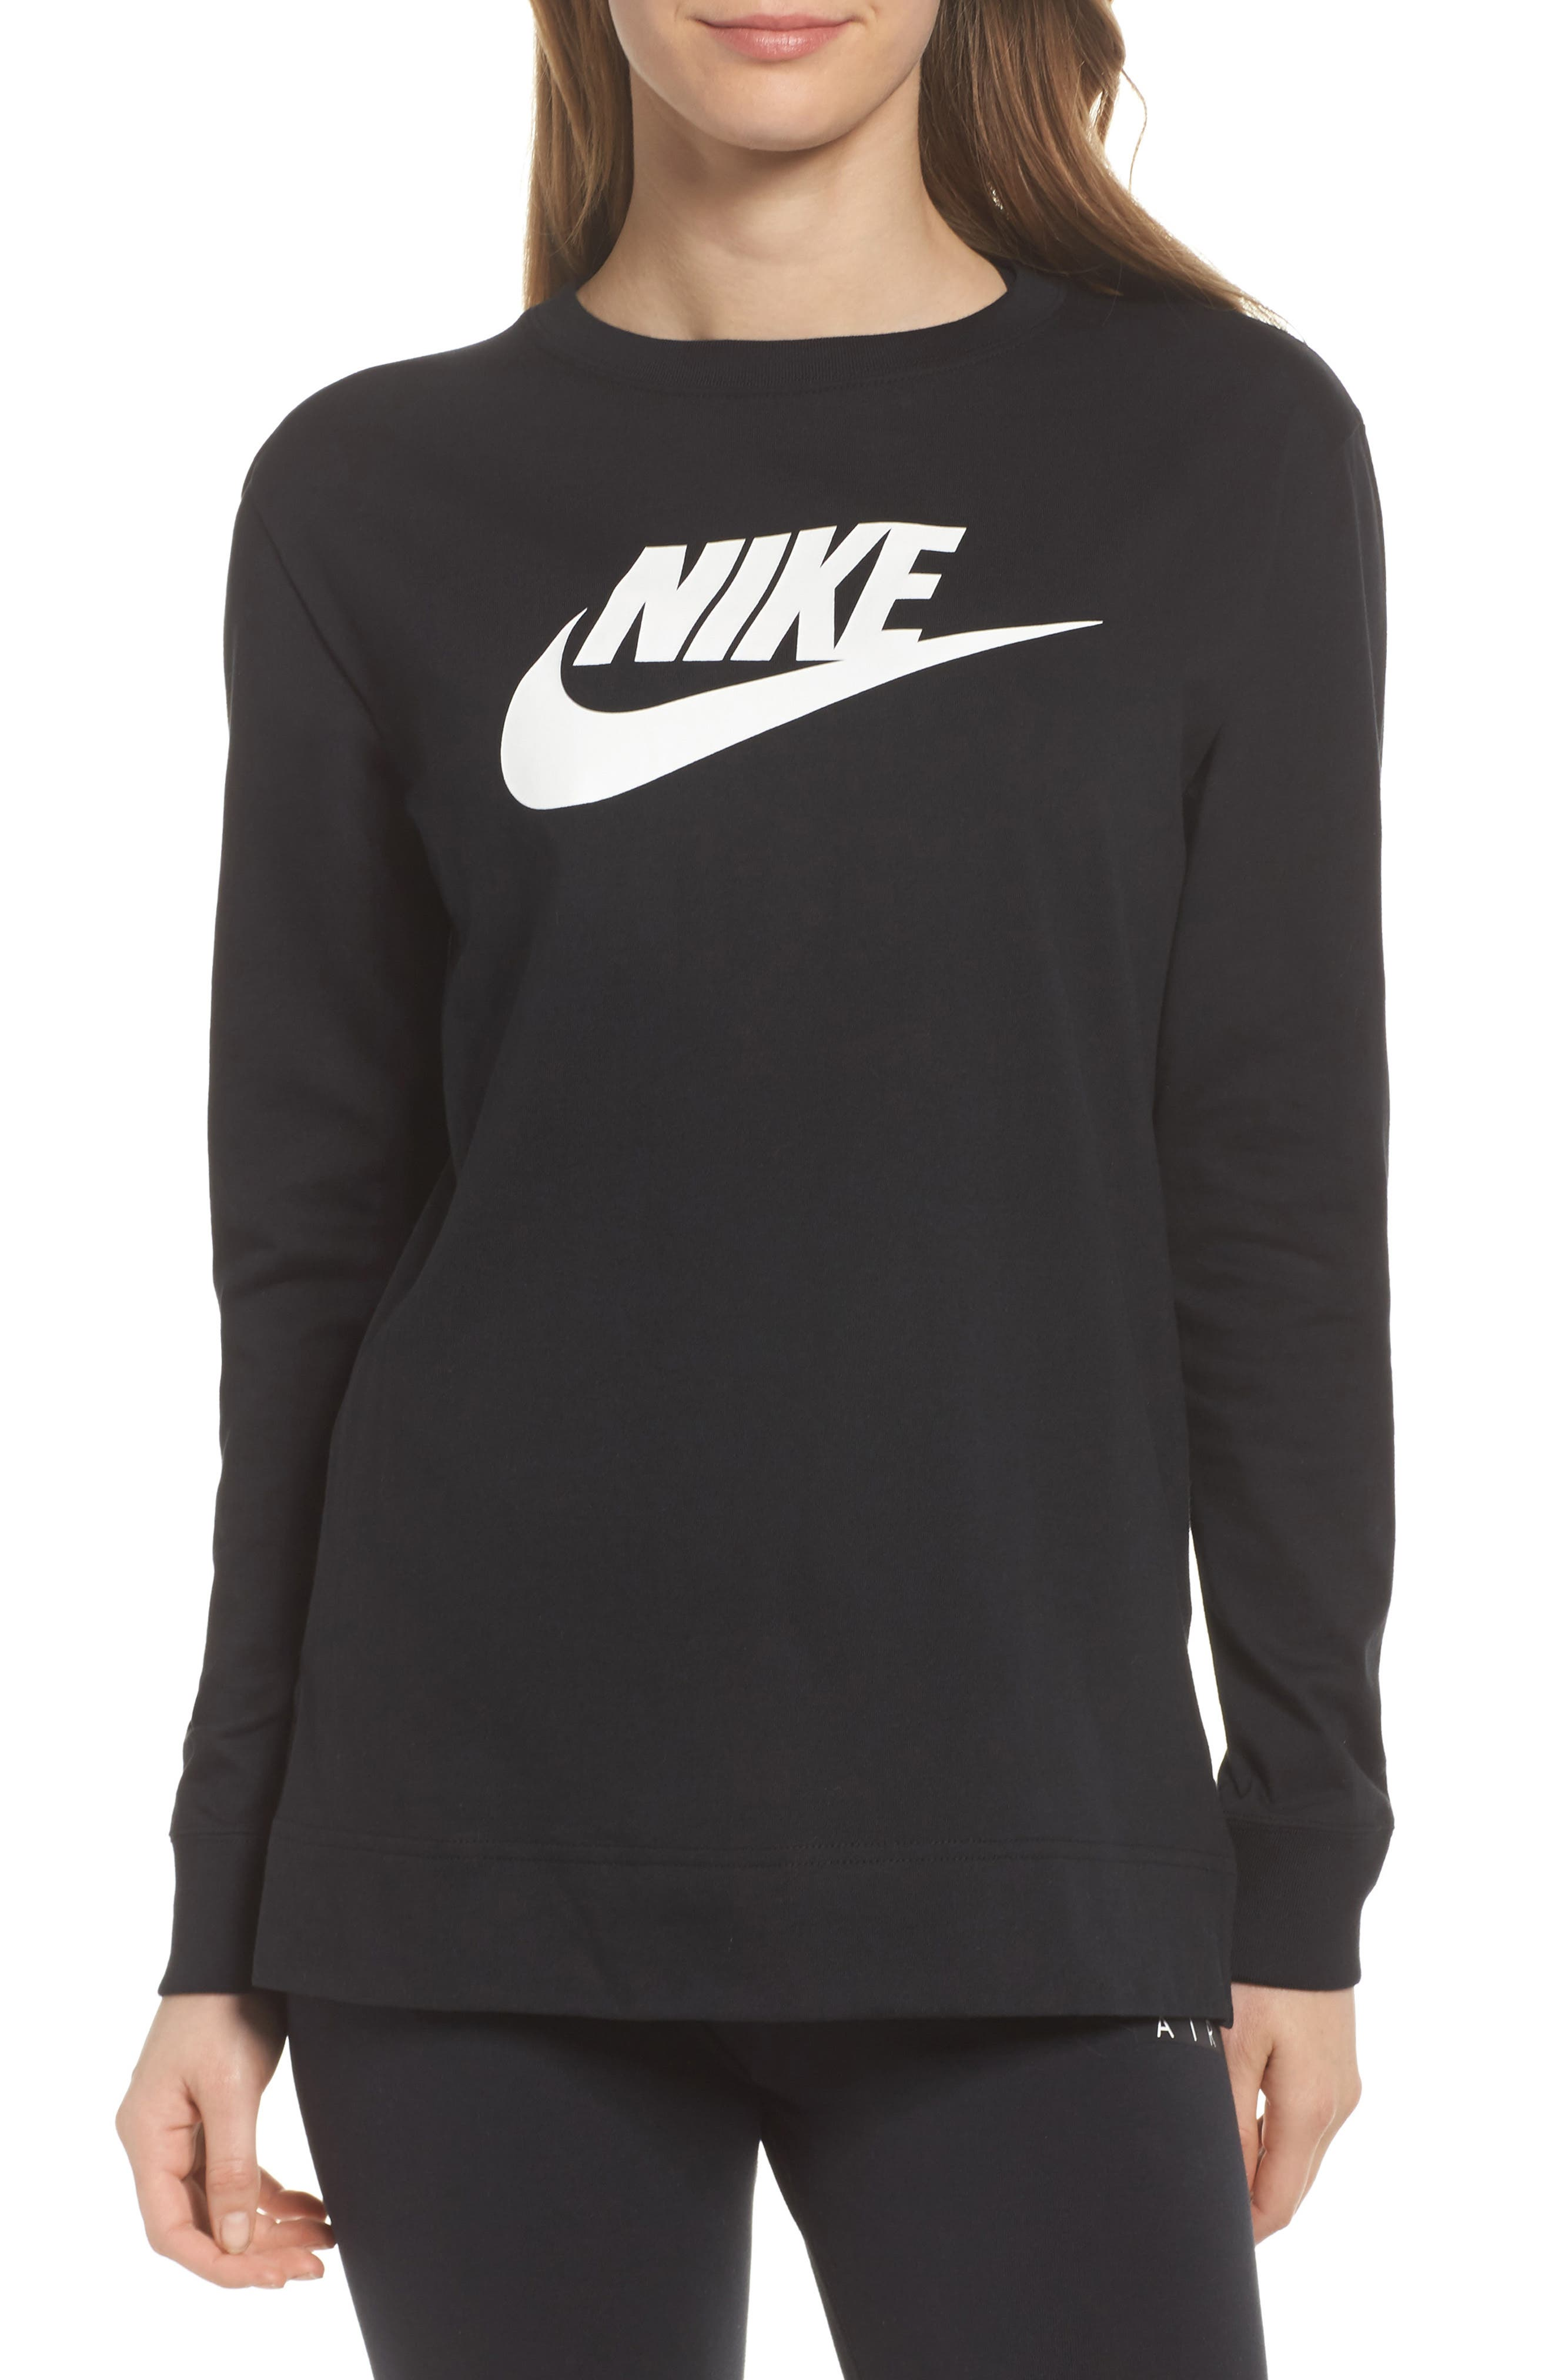 Sportswear HBR Women's Long Sleeve Tee,                             Main thumbnail 1, color,                             Black/ White